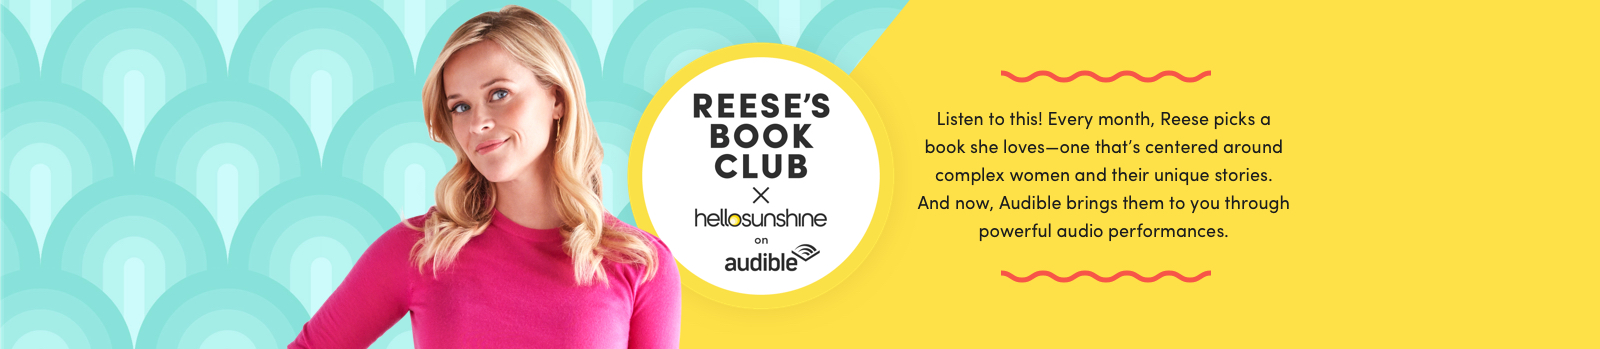 Reese's Book Club by Hello Sunshine on Audible